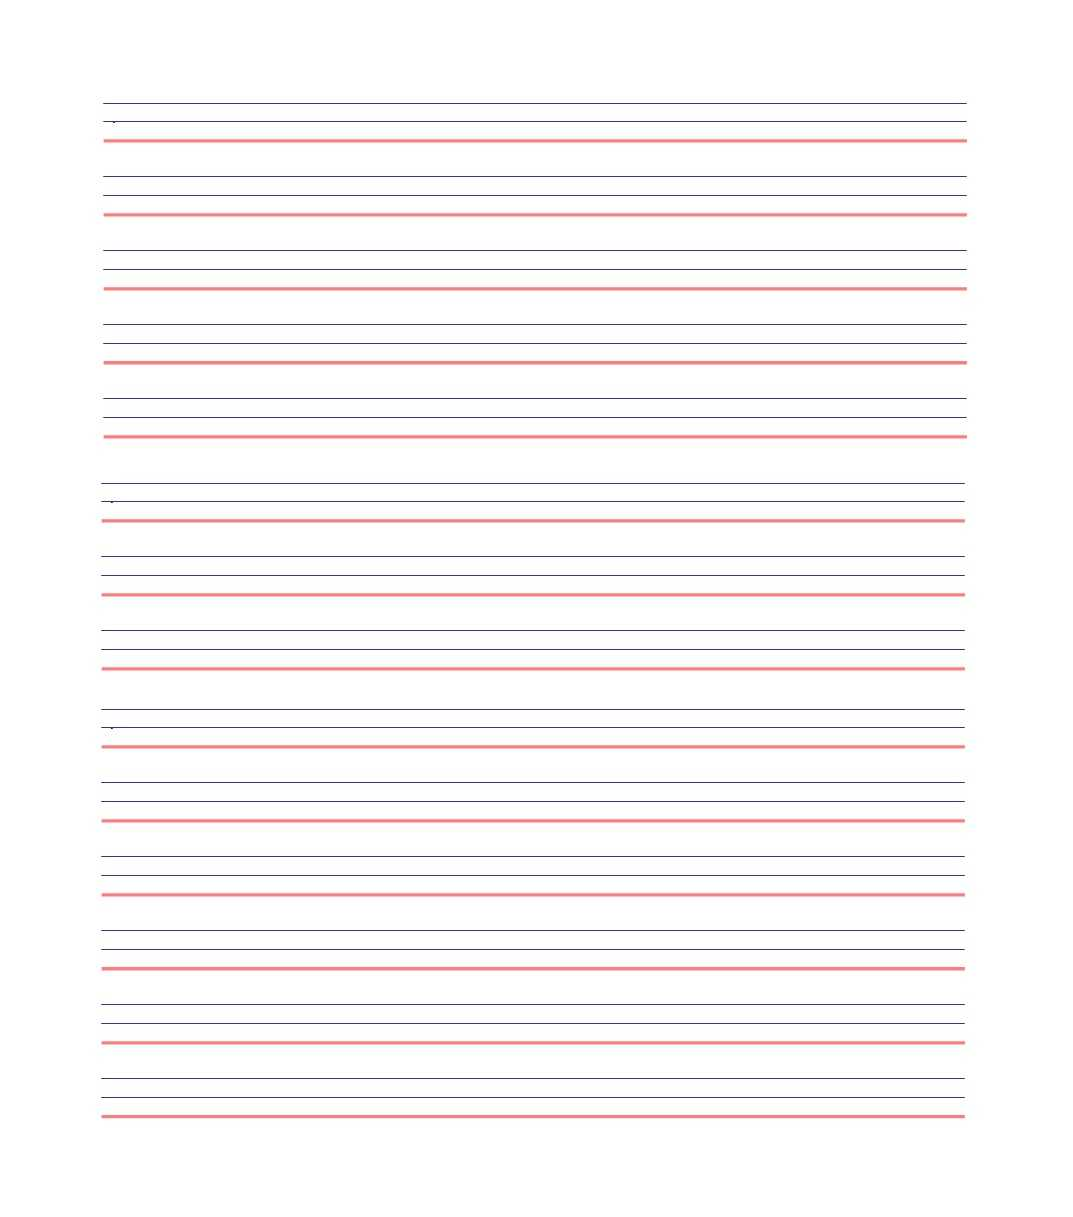 32 Printable Lined Paper Templates ᐅ Template Lab Throughout Ruled Paper Word Template